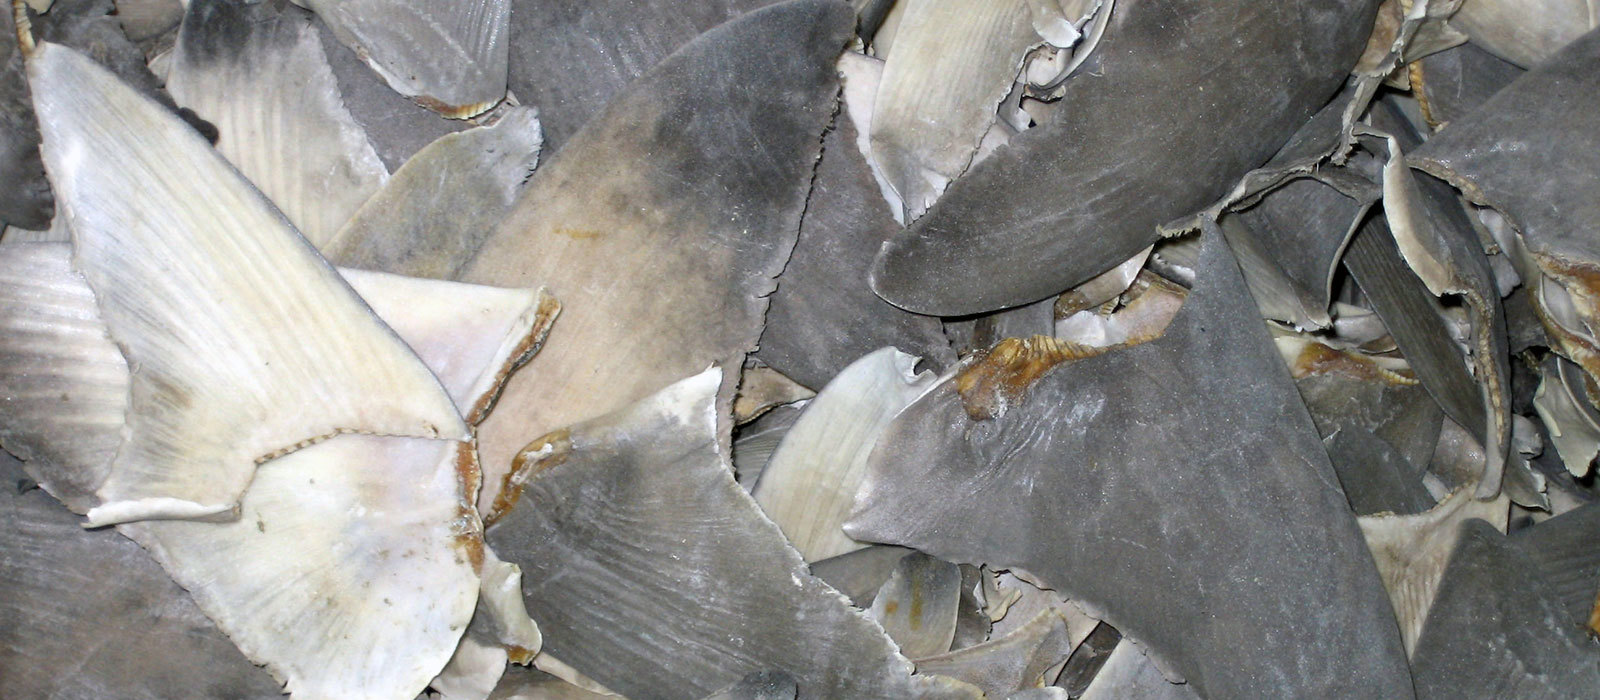 Shark Fins © Jessica King, Marine Photobank.